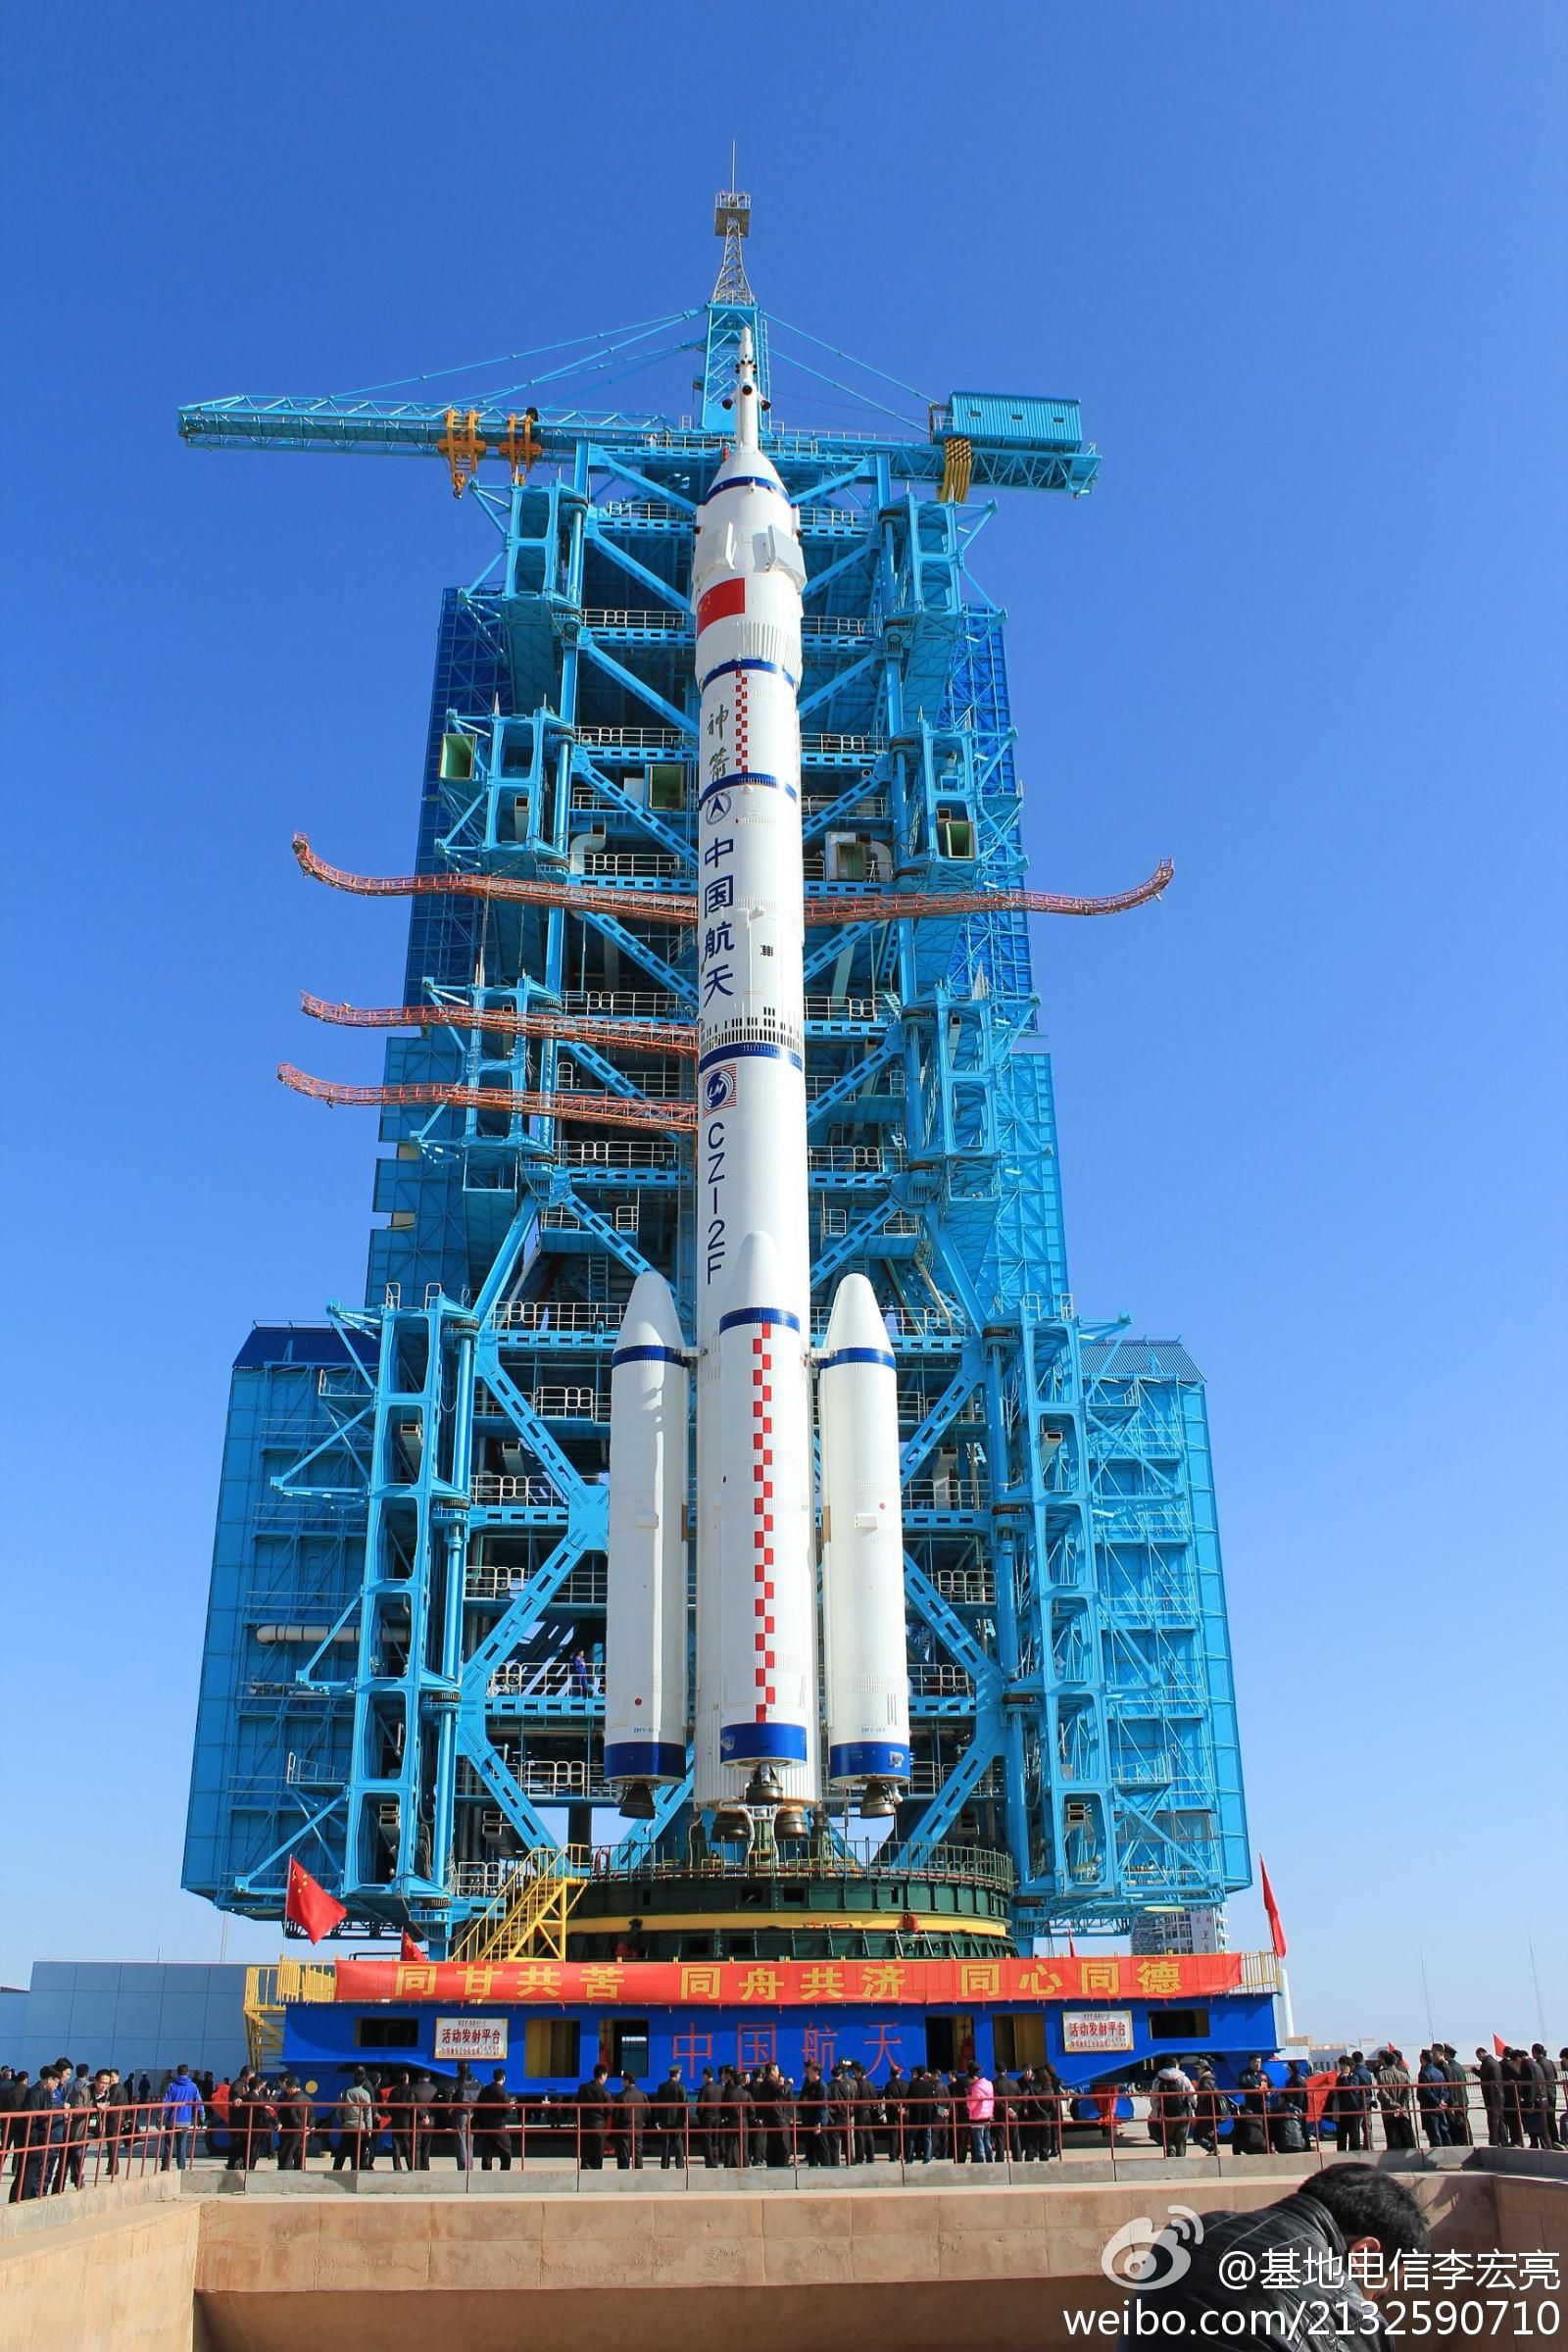 chinese space shuttle program - photo #14